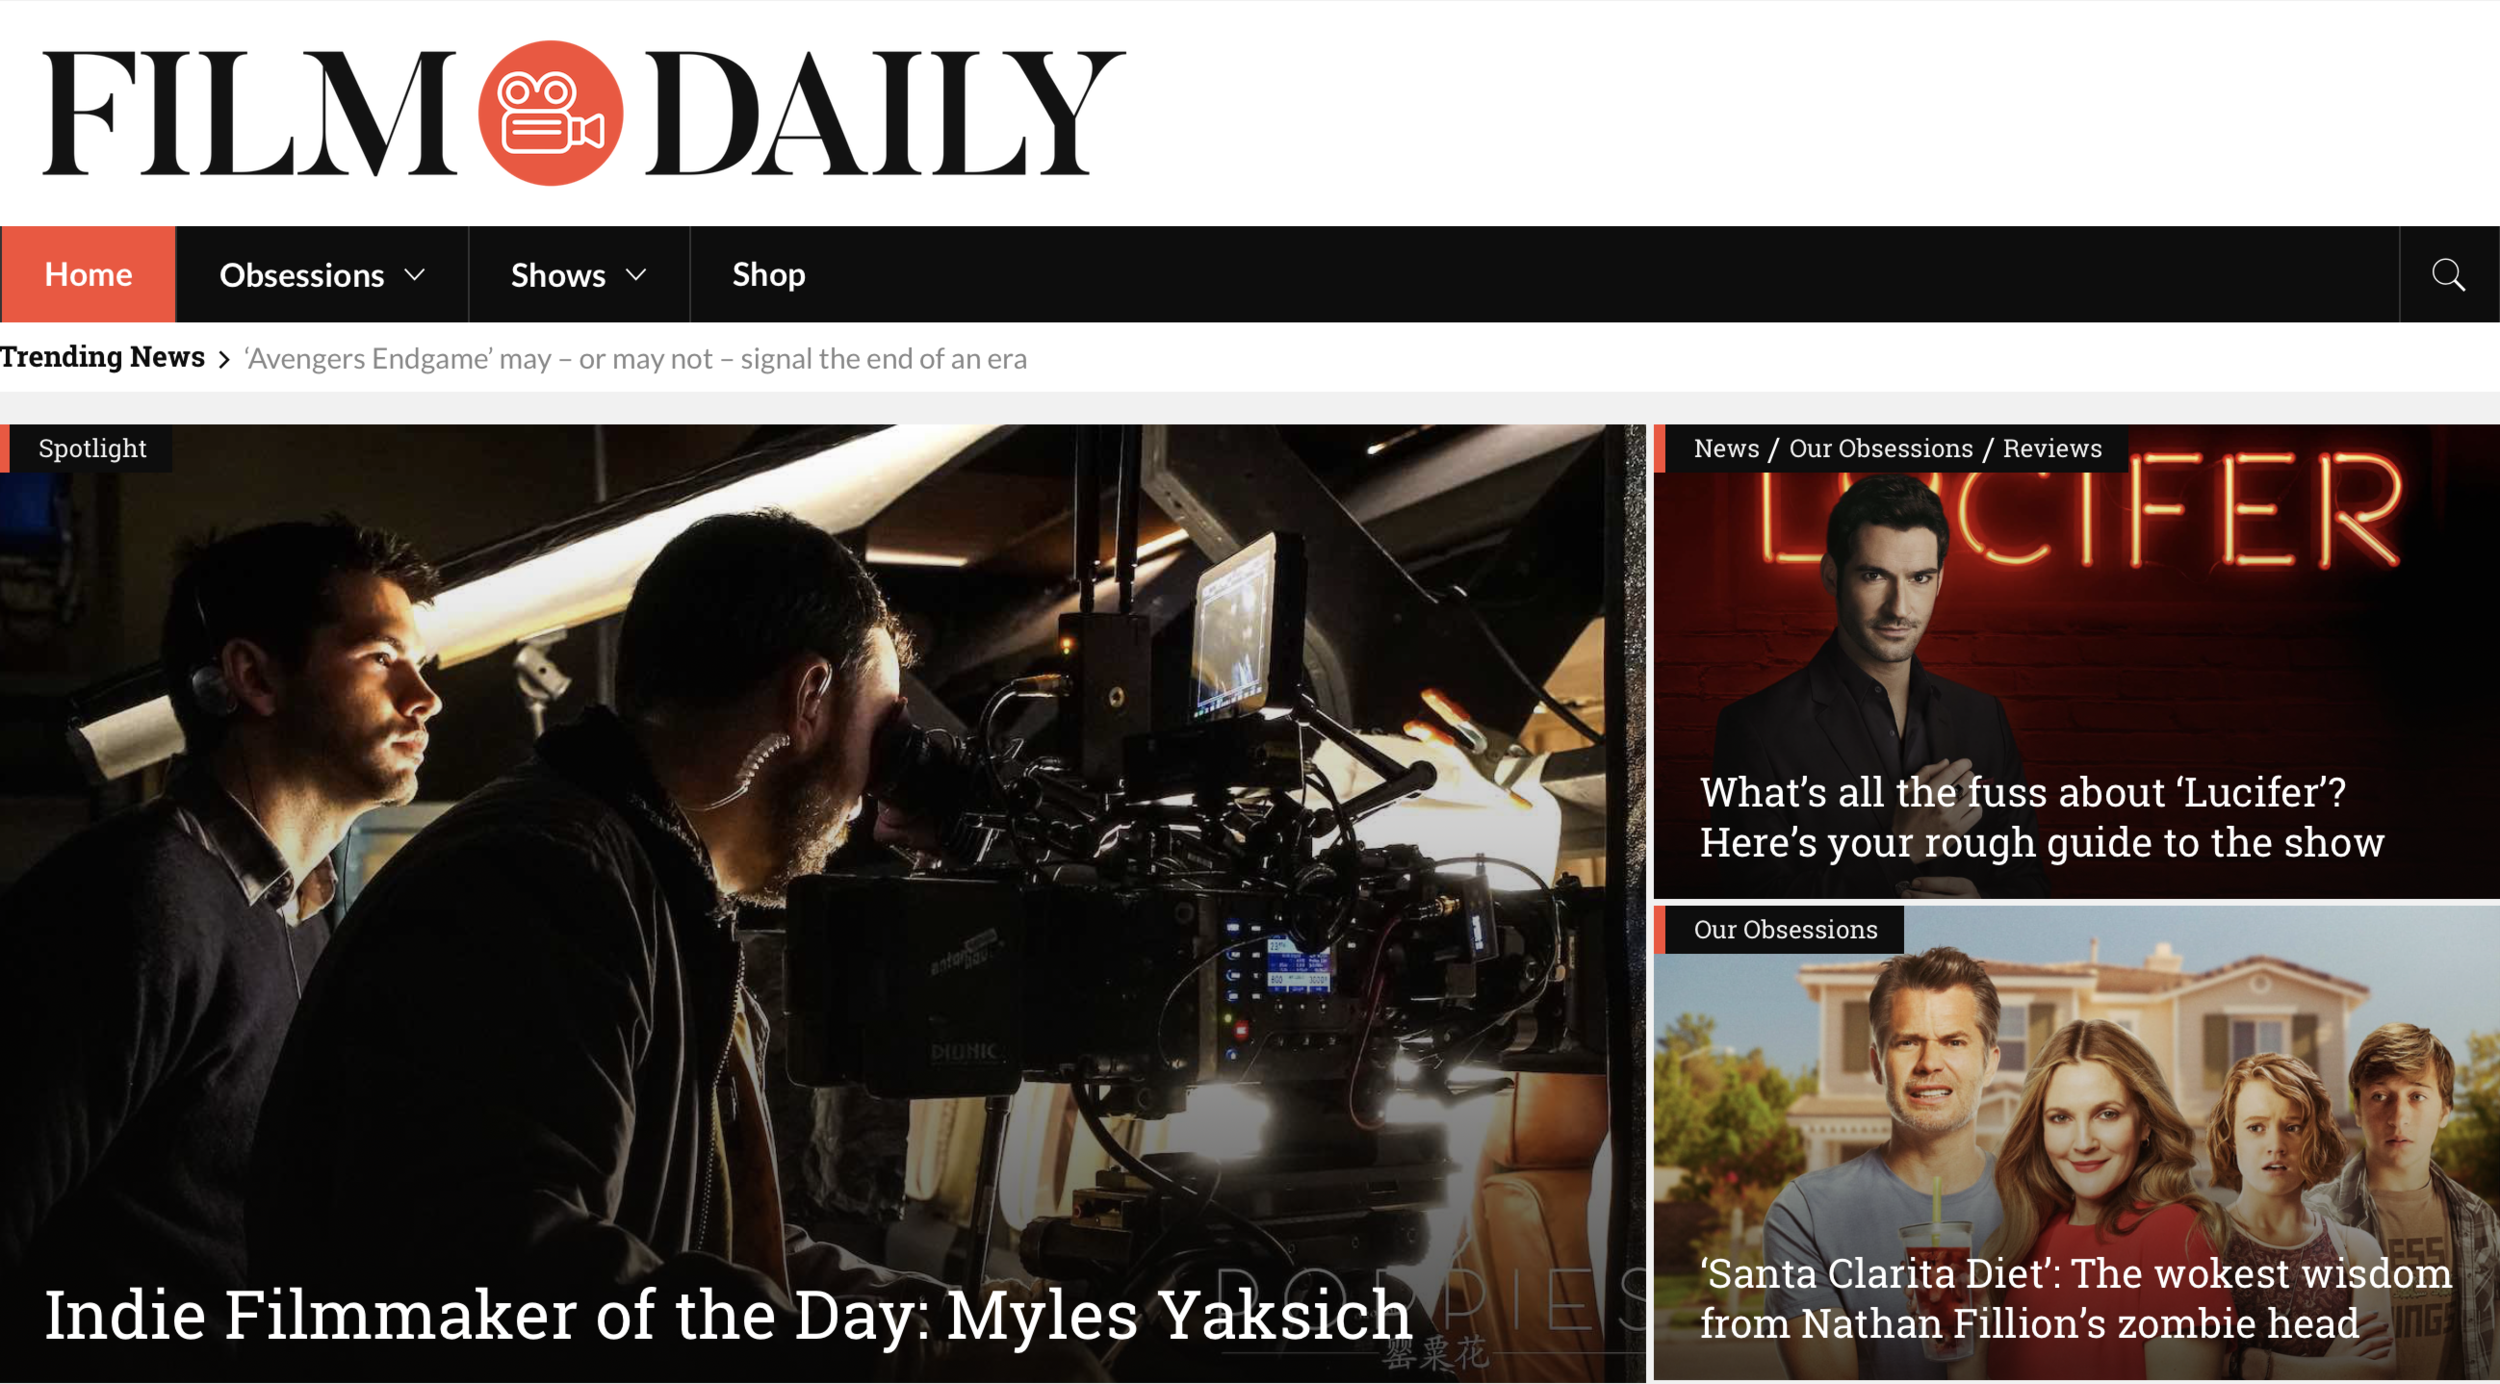 POPPIES_Film-Daily_Myles-Yaksich_Film-Maker_Press.png